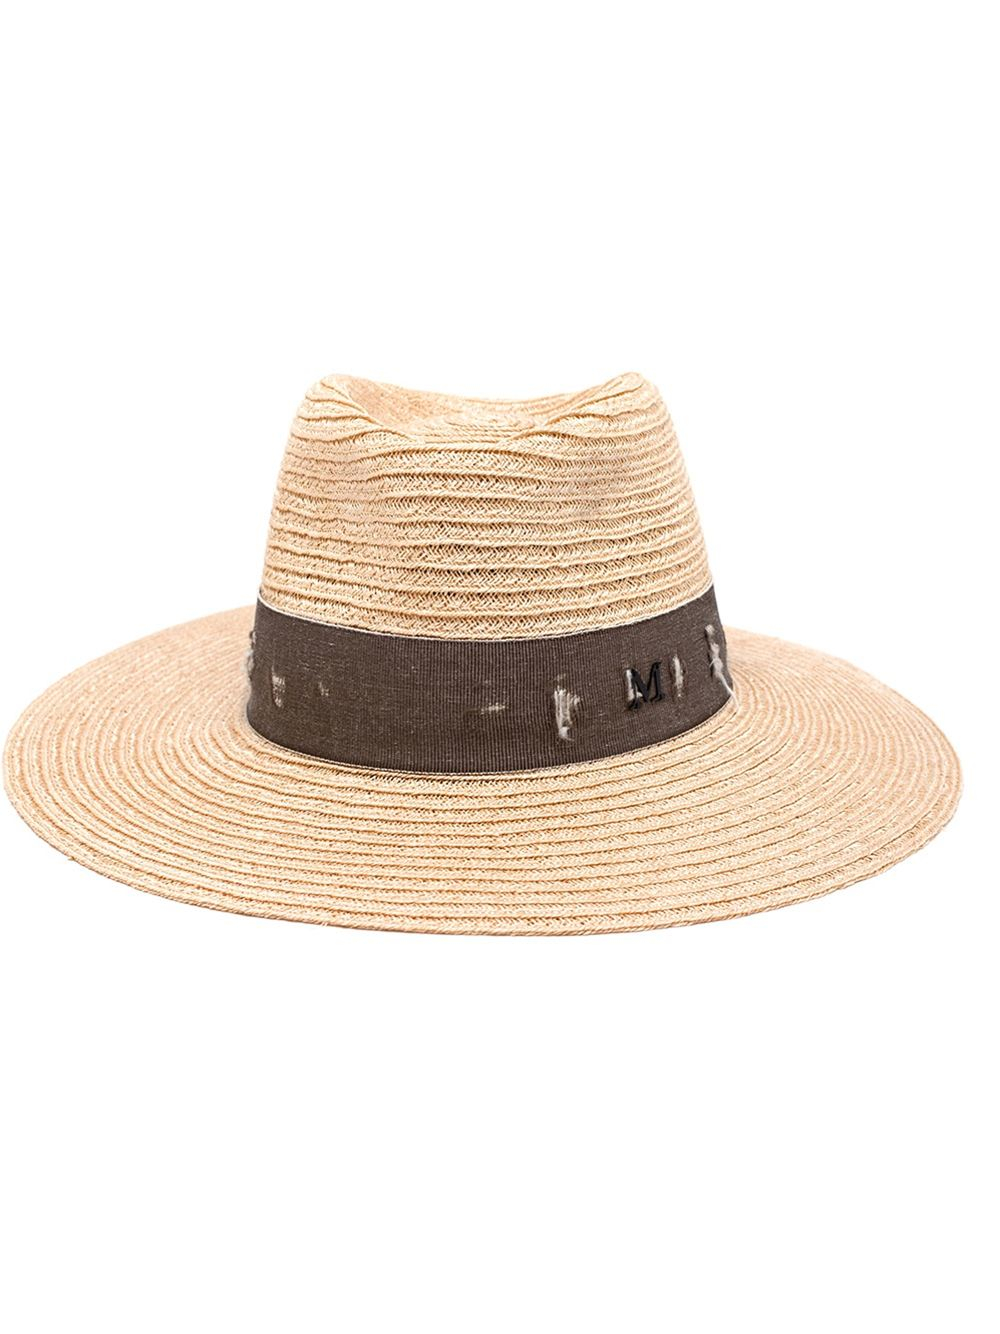 Maison michel 39 charles 39 hat in natural lyst for Maison michel